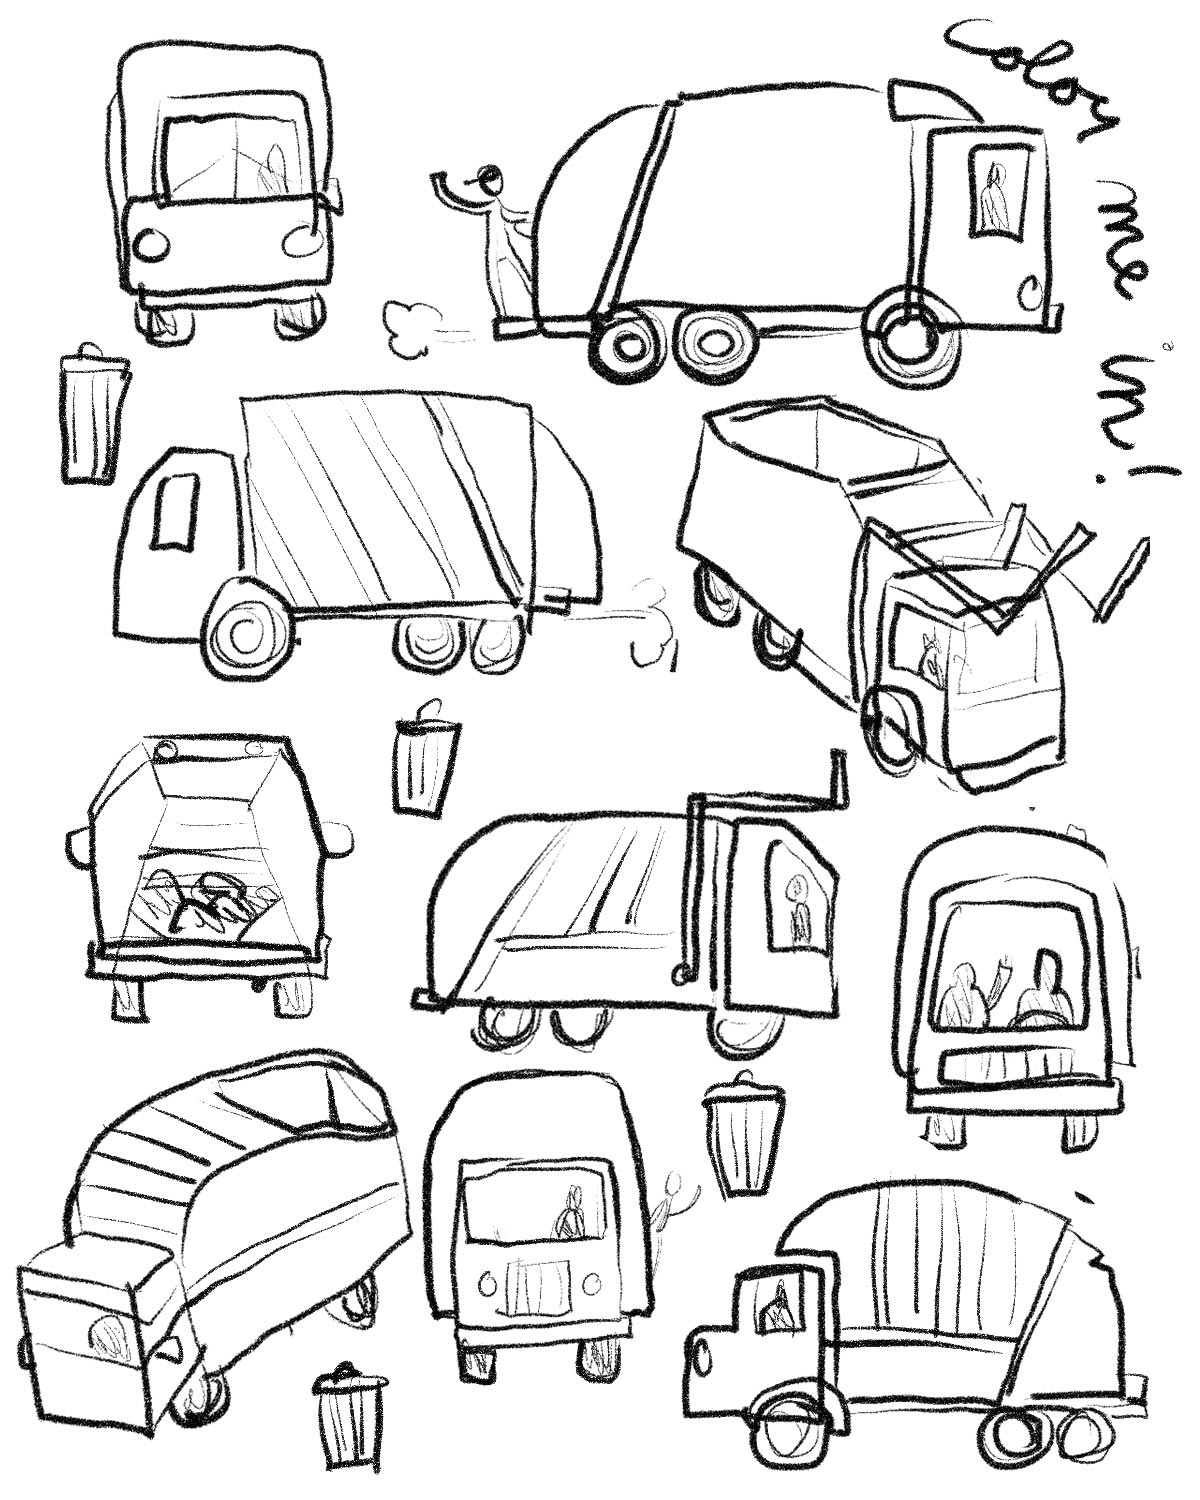 Waste Drawing at GetDrawings.com | Free for personal use ...